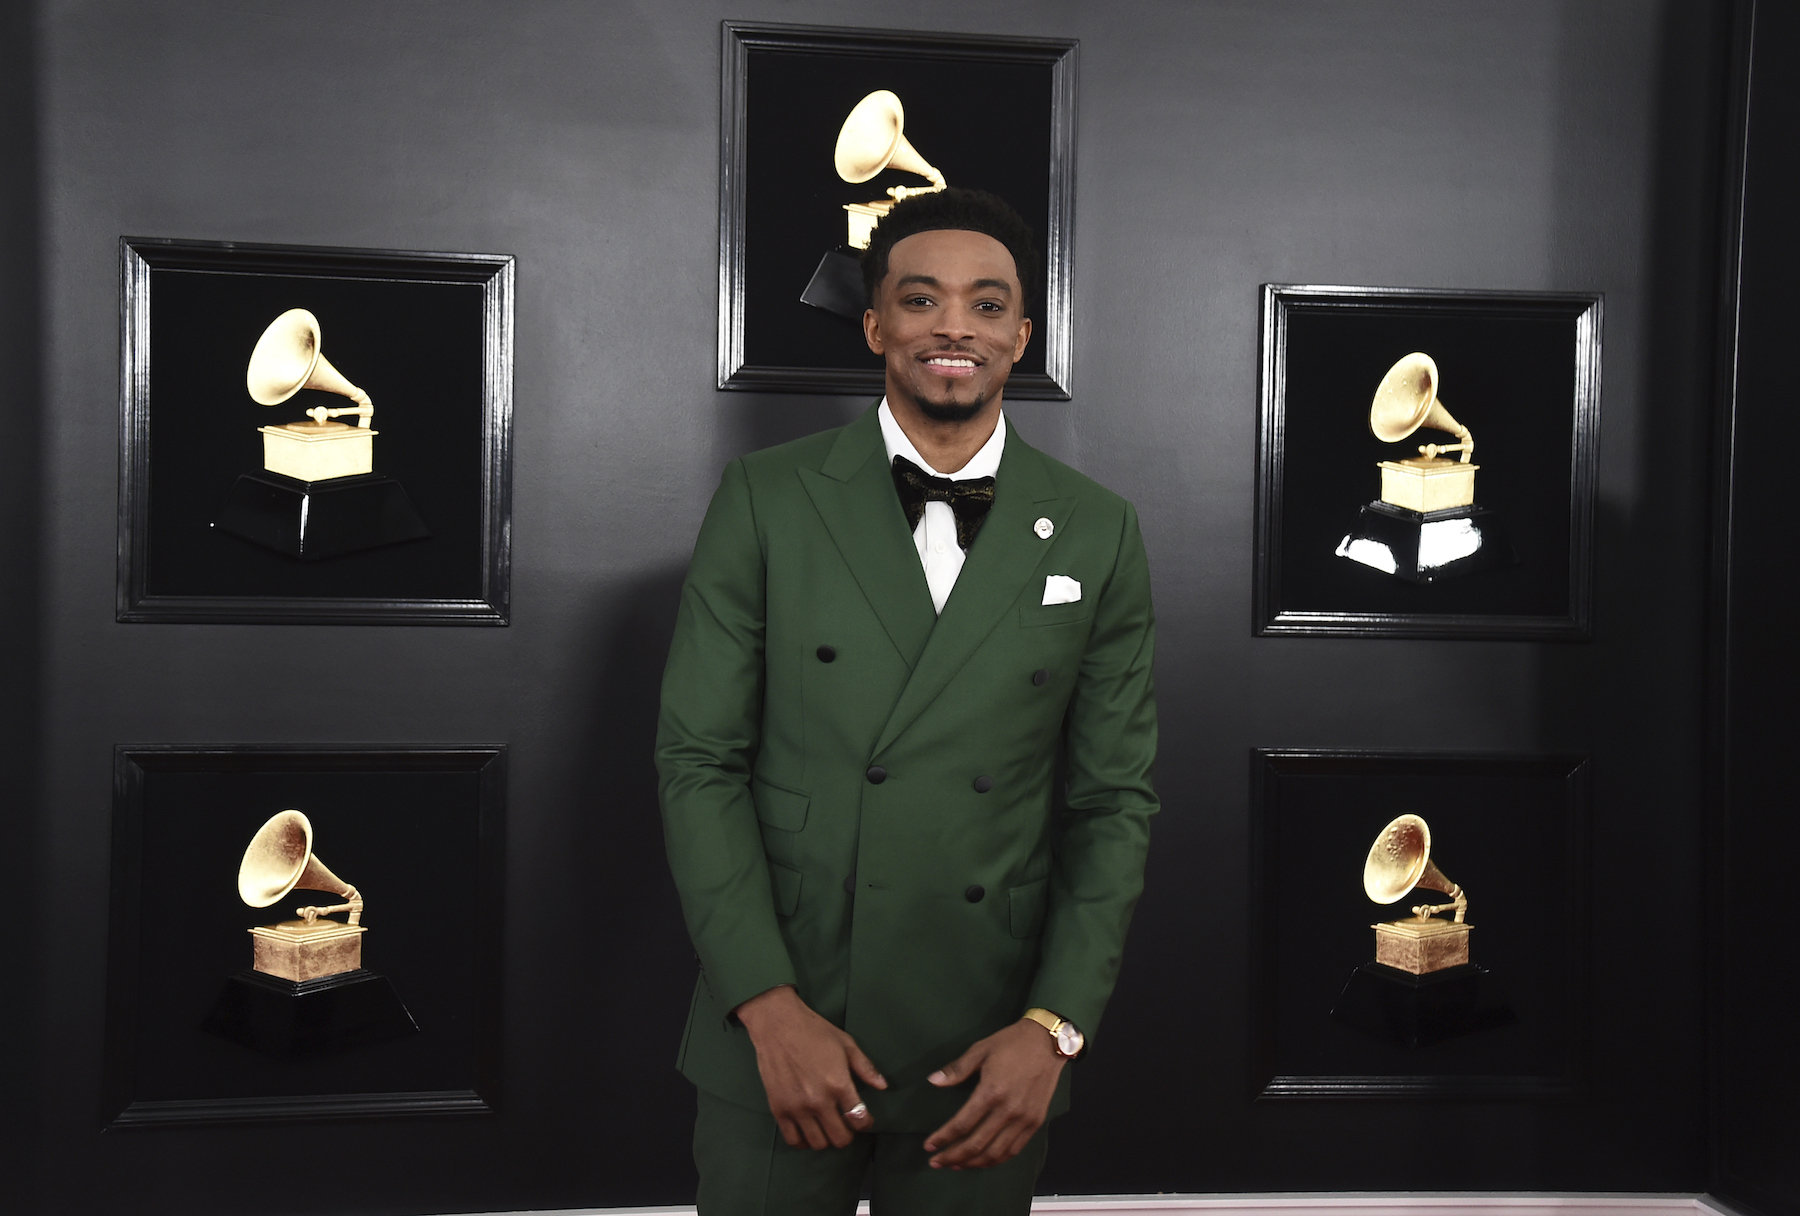 "<div class=""meta image-caption""><div class=""origin-logo origin-image ap""><span>AP</span></div><span class=""caption-text"">Jonathan McReynolds arrives at the 61st annual Grammy Awards at the Staples Center on Sunday, Feb. 10, 2019, in Los Angeles. (Jordan Strauss/Invision/AP)</span></div>"